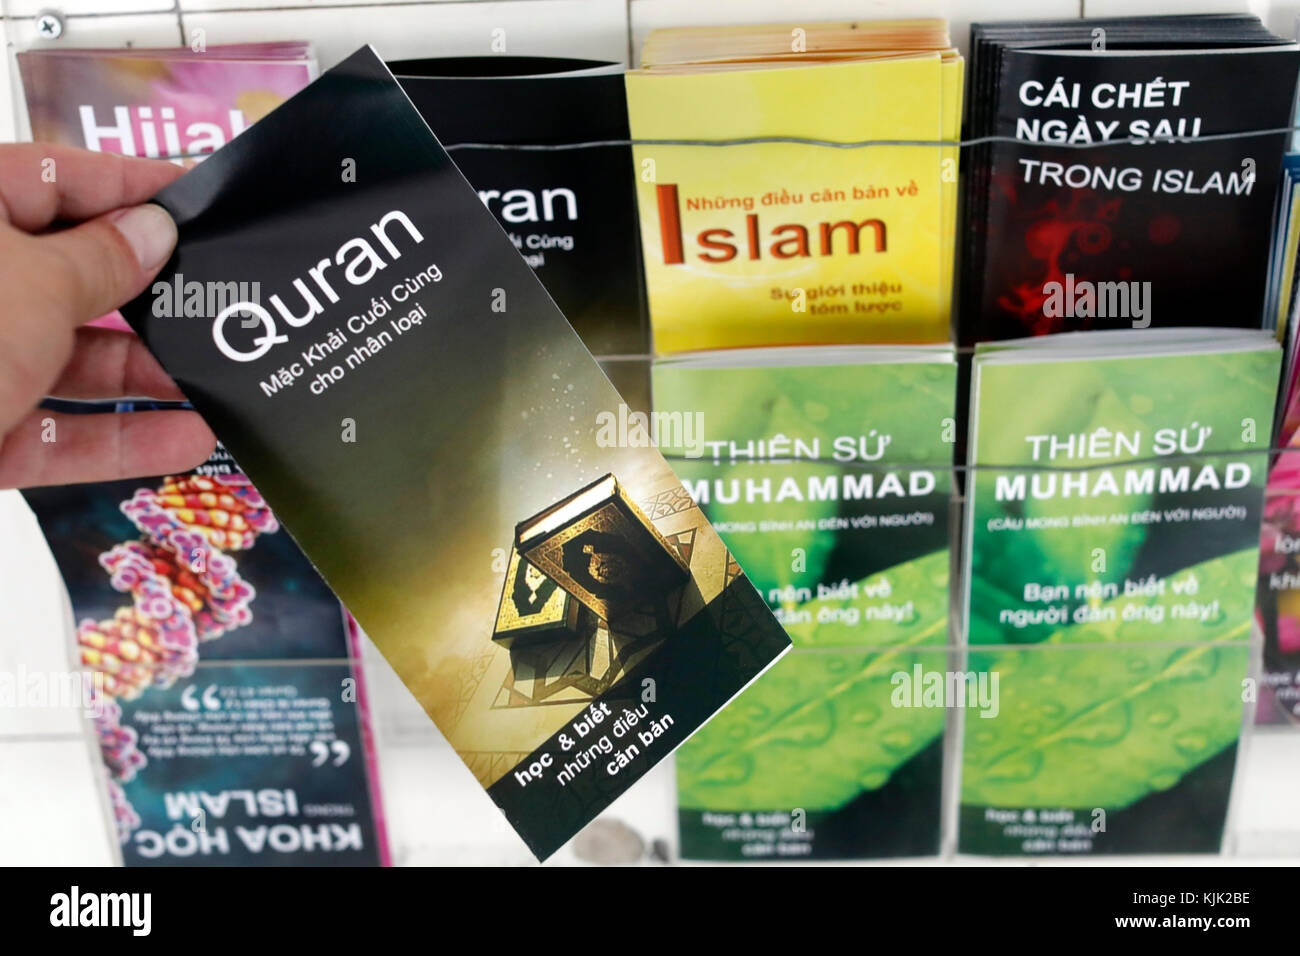 Saigon Central Mosque. Brochures about Islam.  Ho Chi Minh City.  Vietnam. - Stock Image